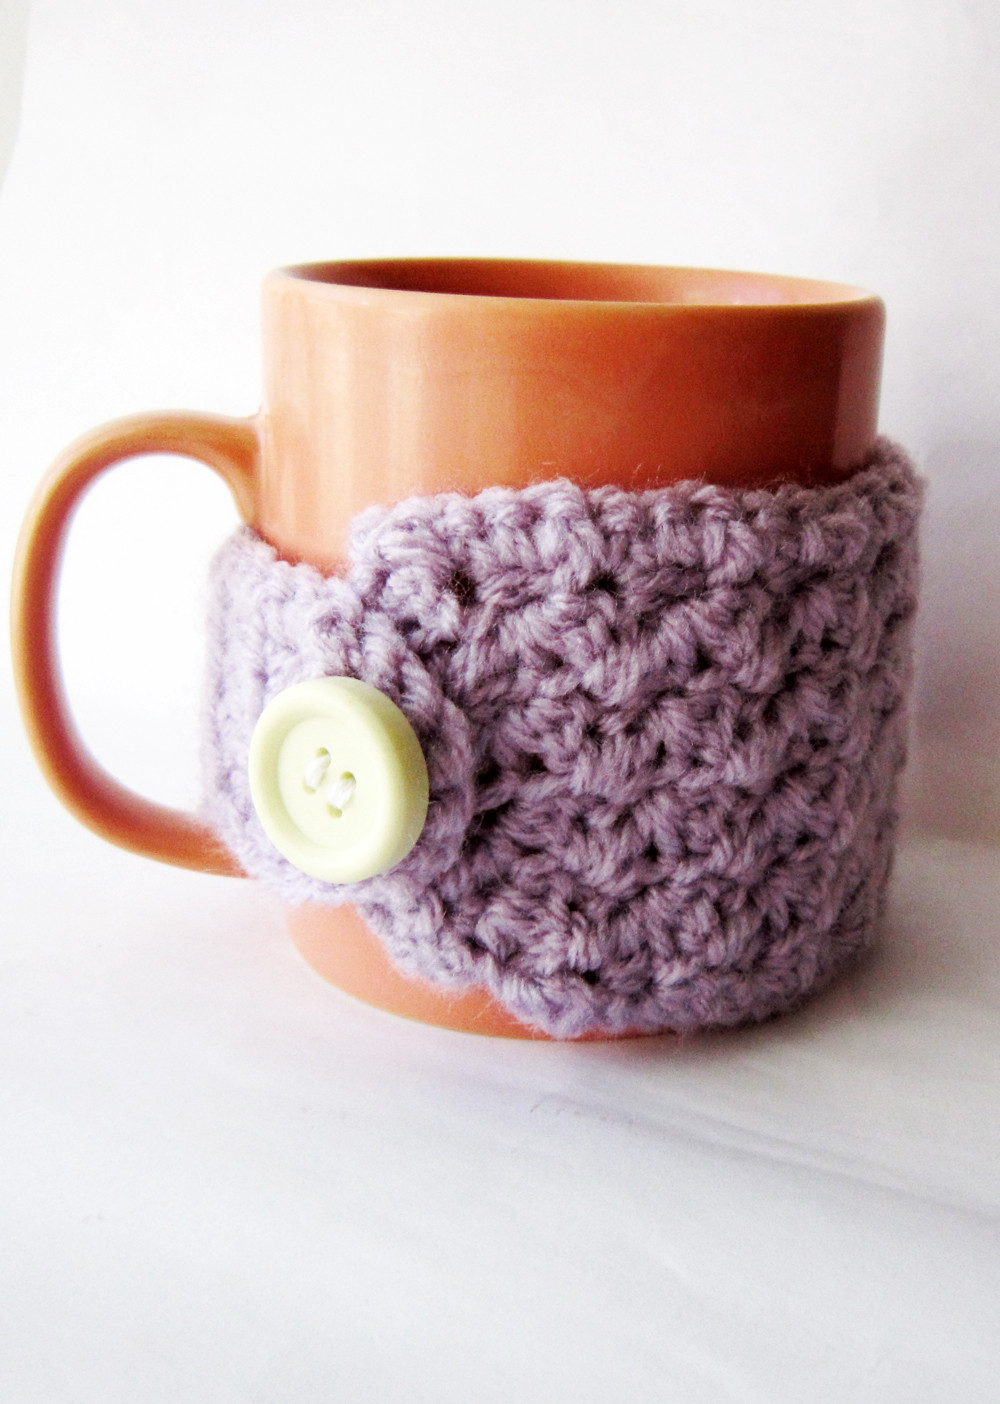 Crochet Coffee Cup Cozy Inspirational Easy Crochet Mug Cozy Free Pattern Akamatra Of Unique 44 Pics Crochet Coffee Cup Cozy